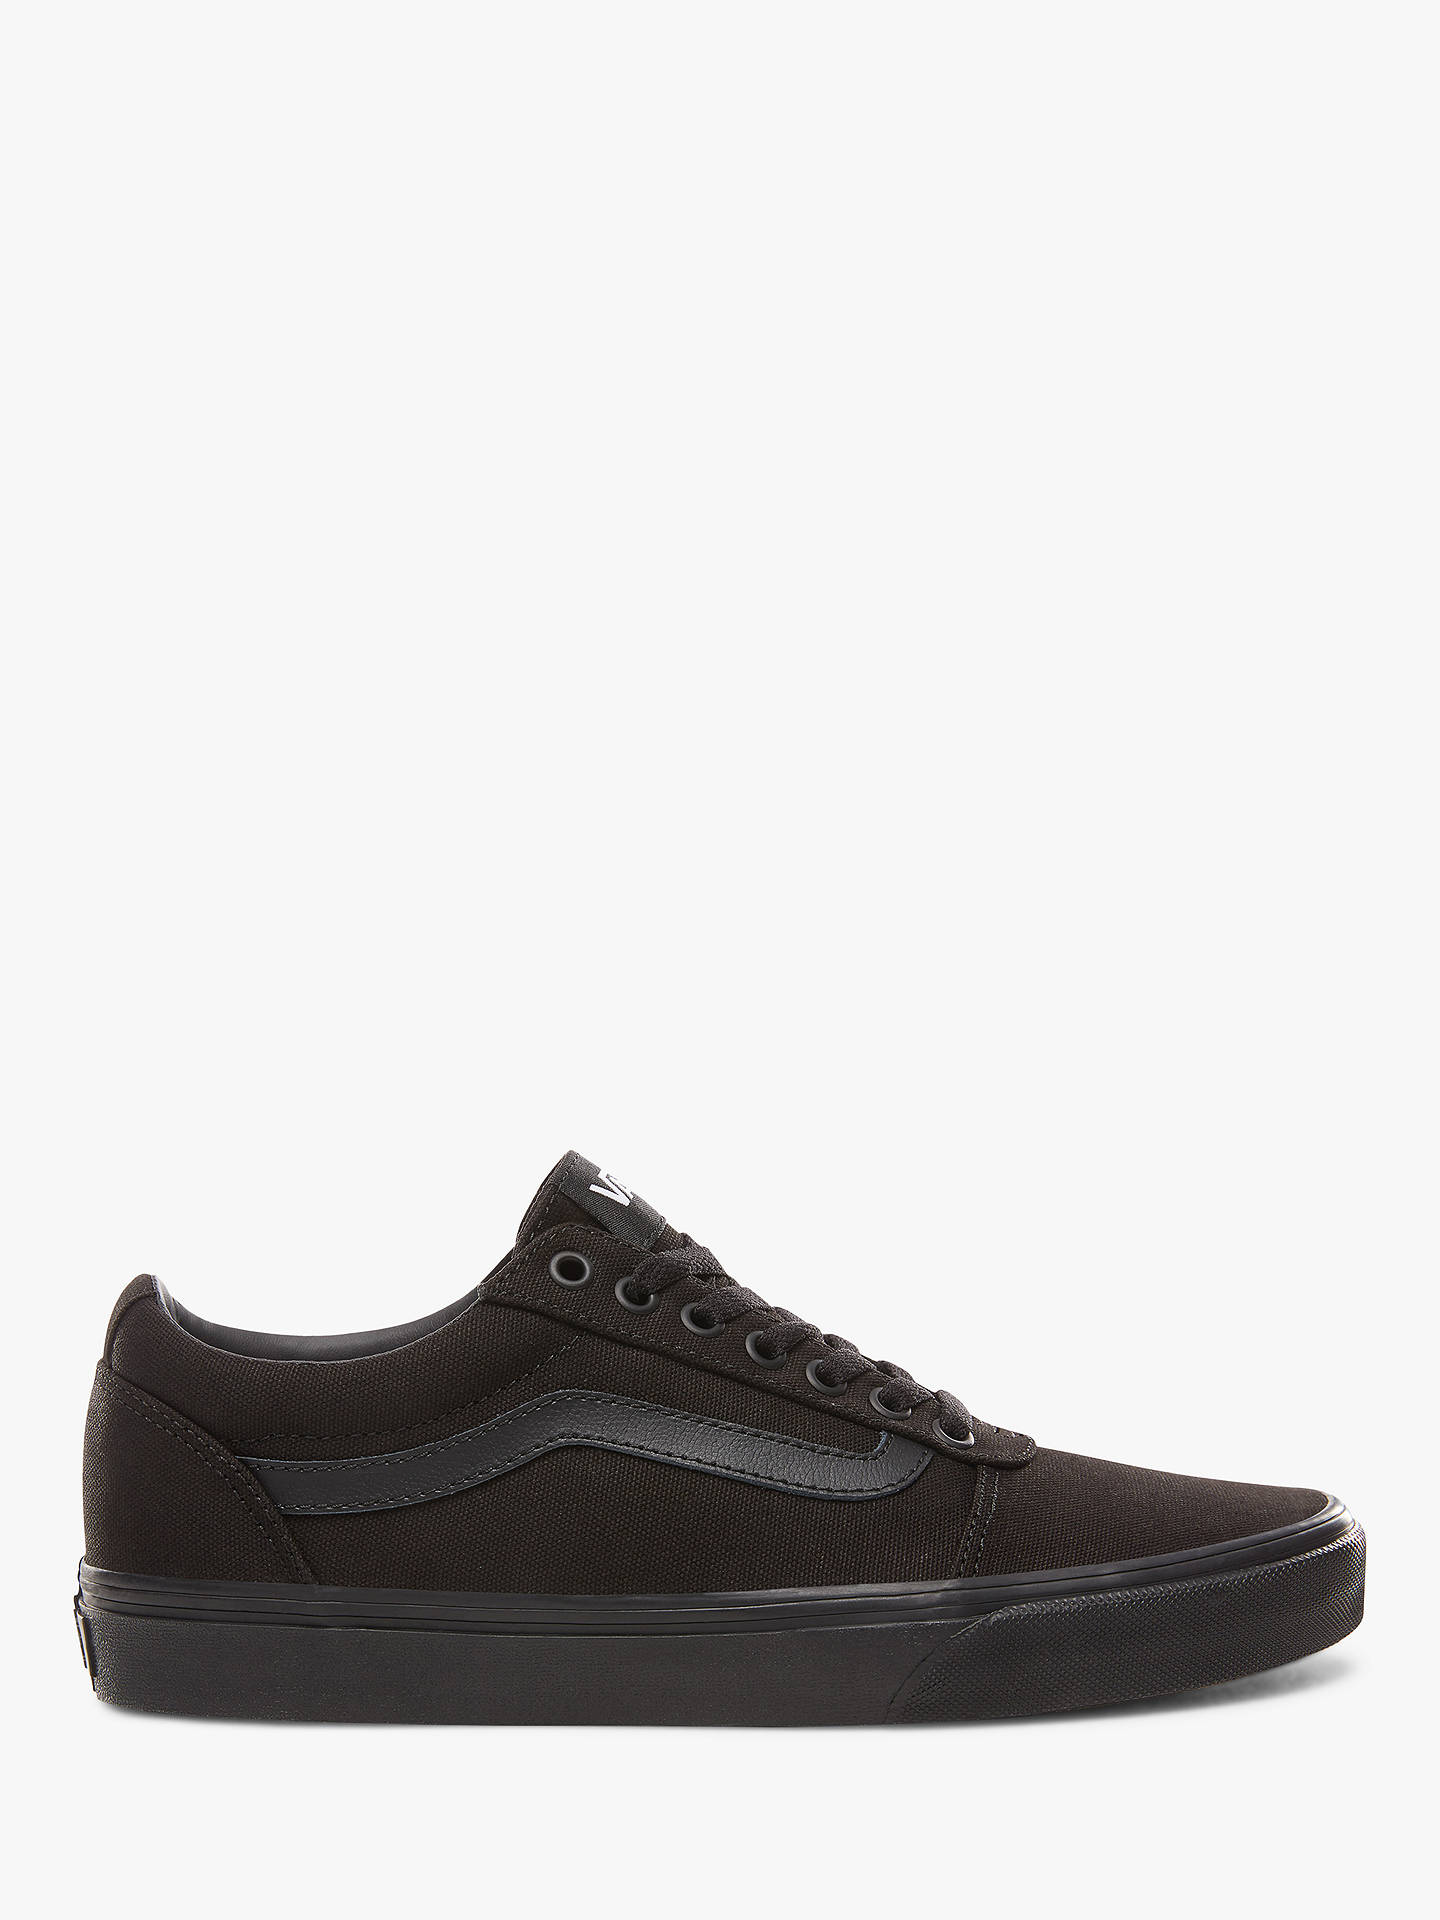 beaf62e1b Buy Vans Ward Trainers, Black, 11 Online at johnlewis.com ...